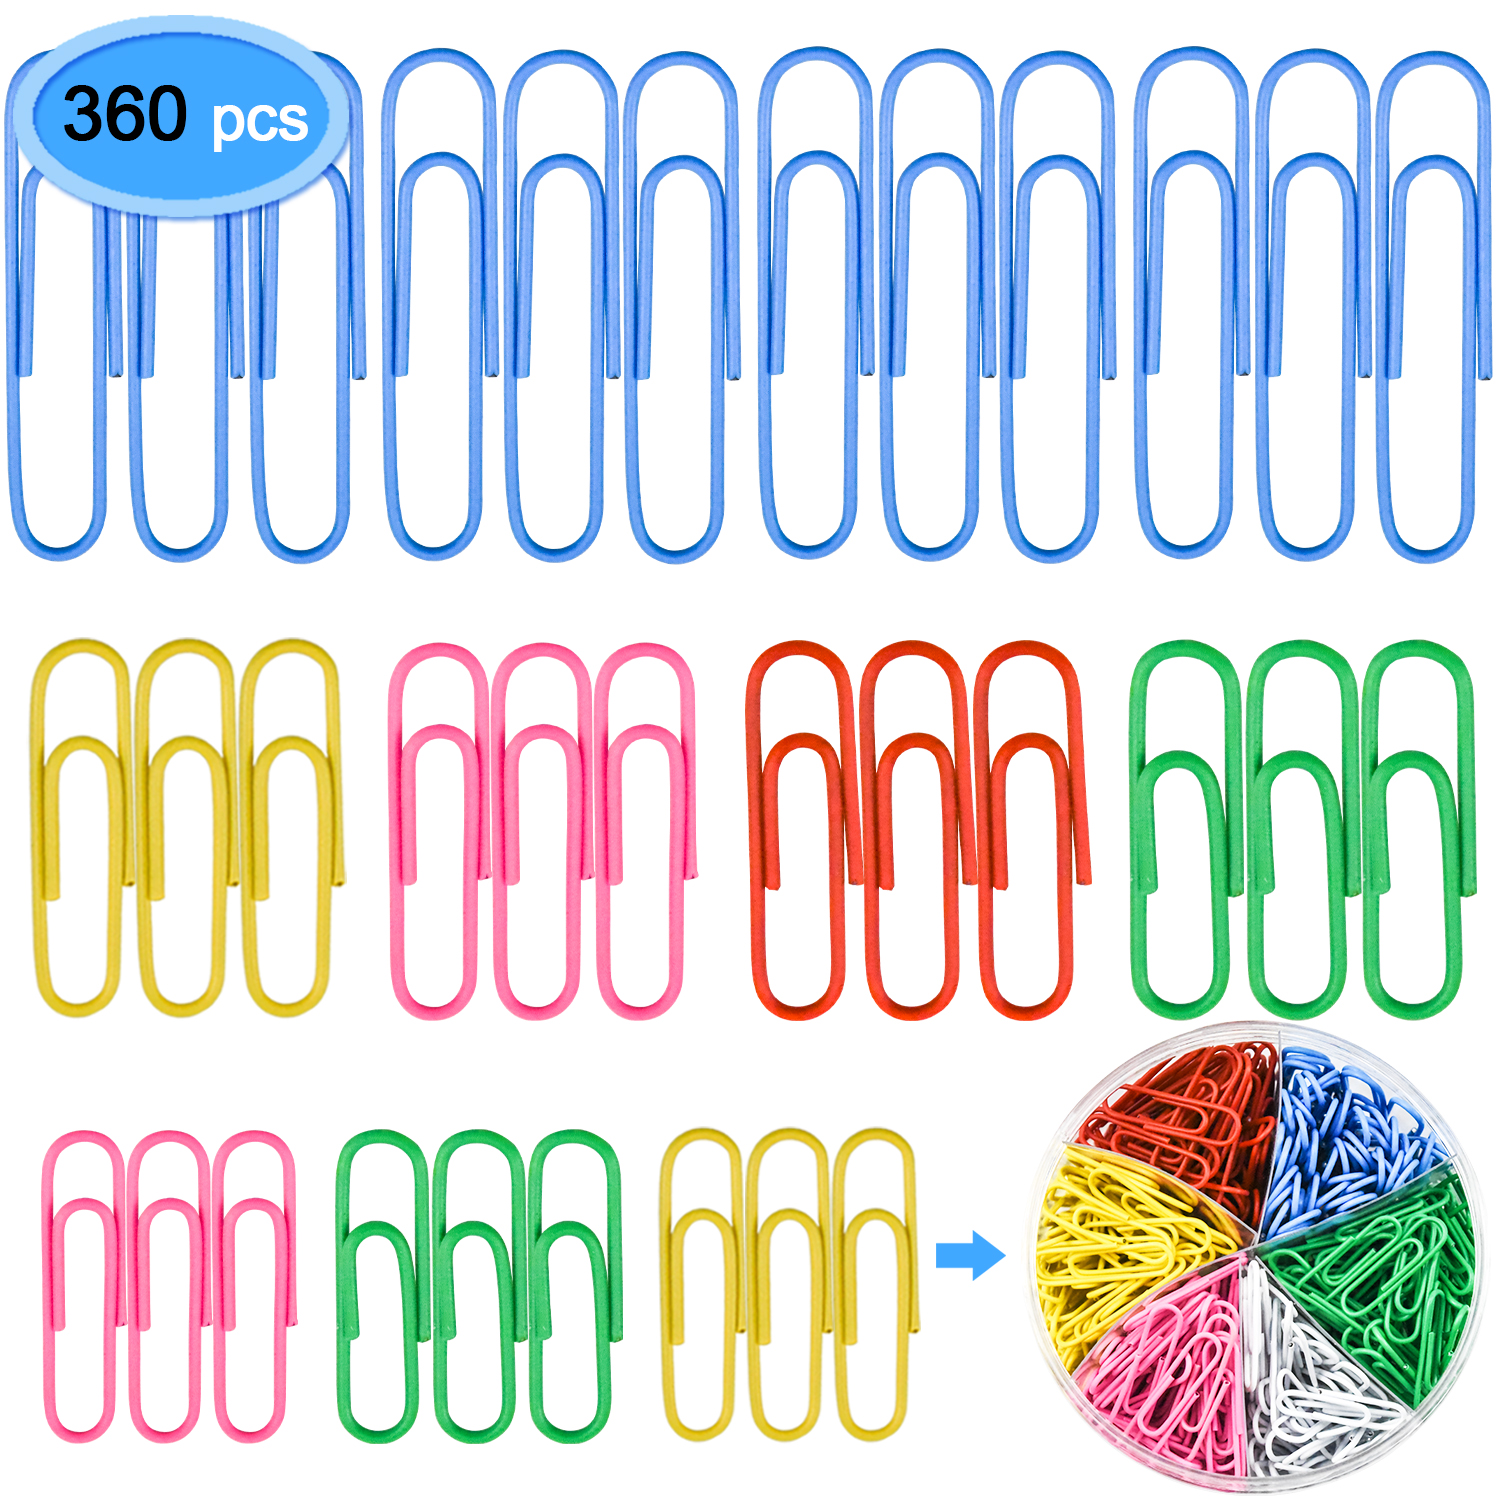 Paper Clips 360 Pieces, EAONE Color Coated Paper Clip Paperclips Assorted Size with Small, Medium, Jumbo Size (28mm, 33mm, 50mm) for Office, School Supply